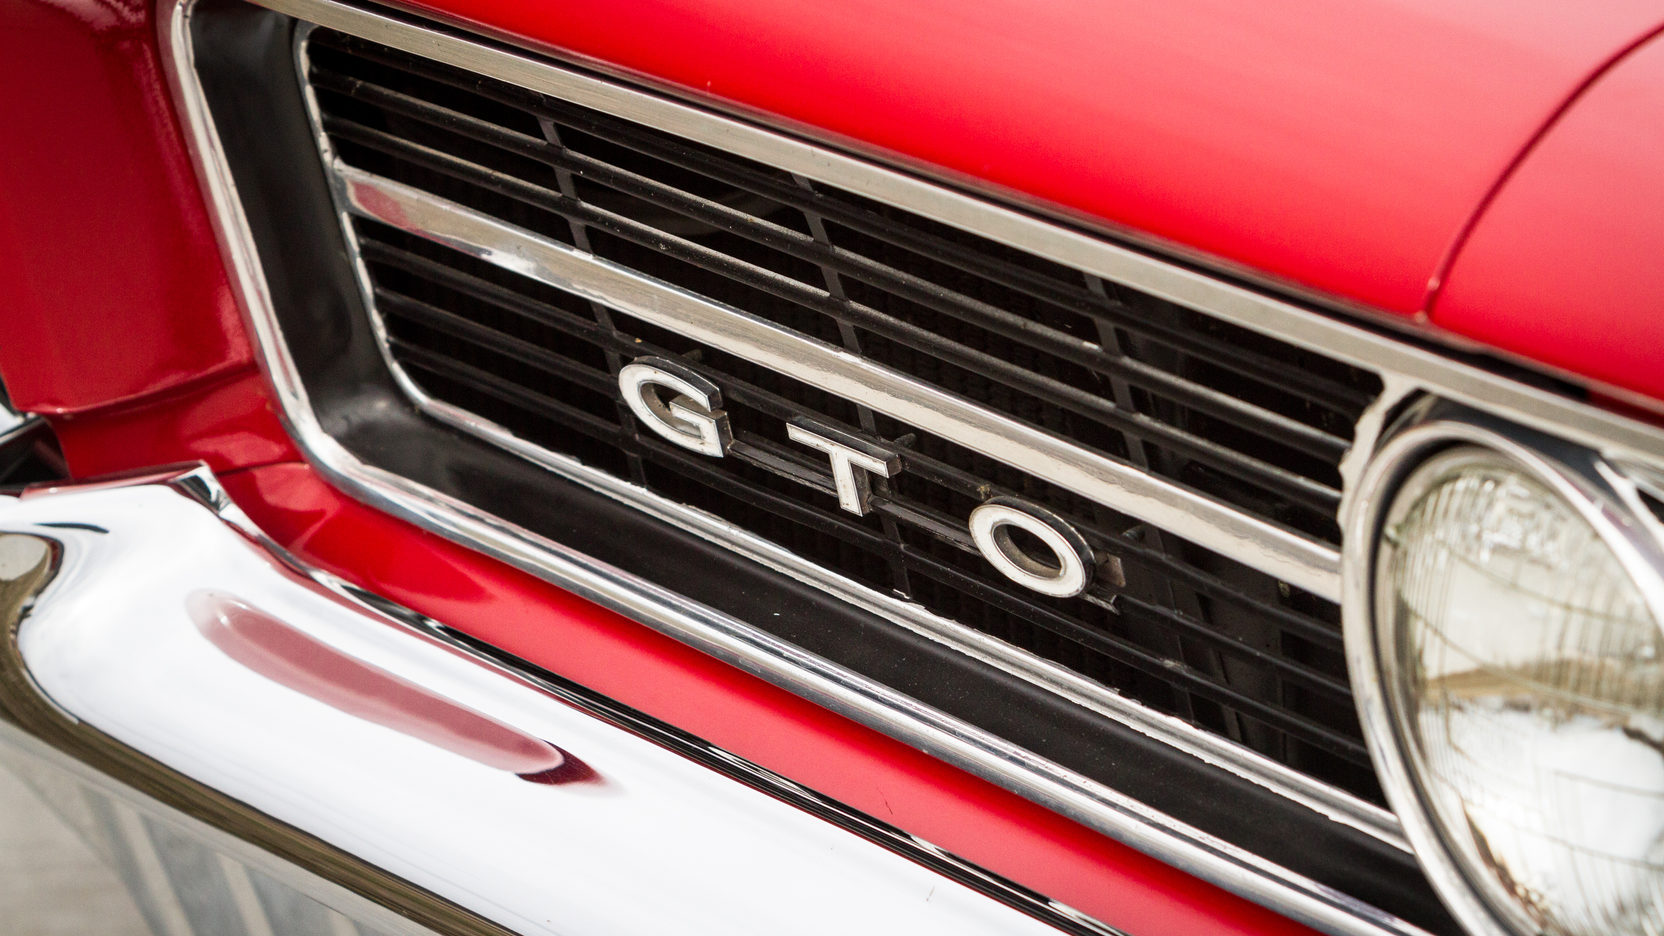 1964 Pontiac LeMans GTO badge grill